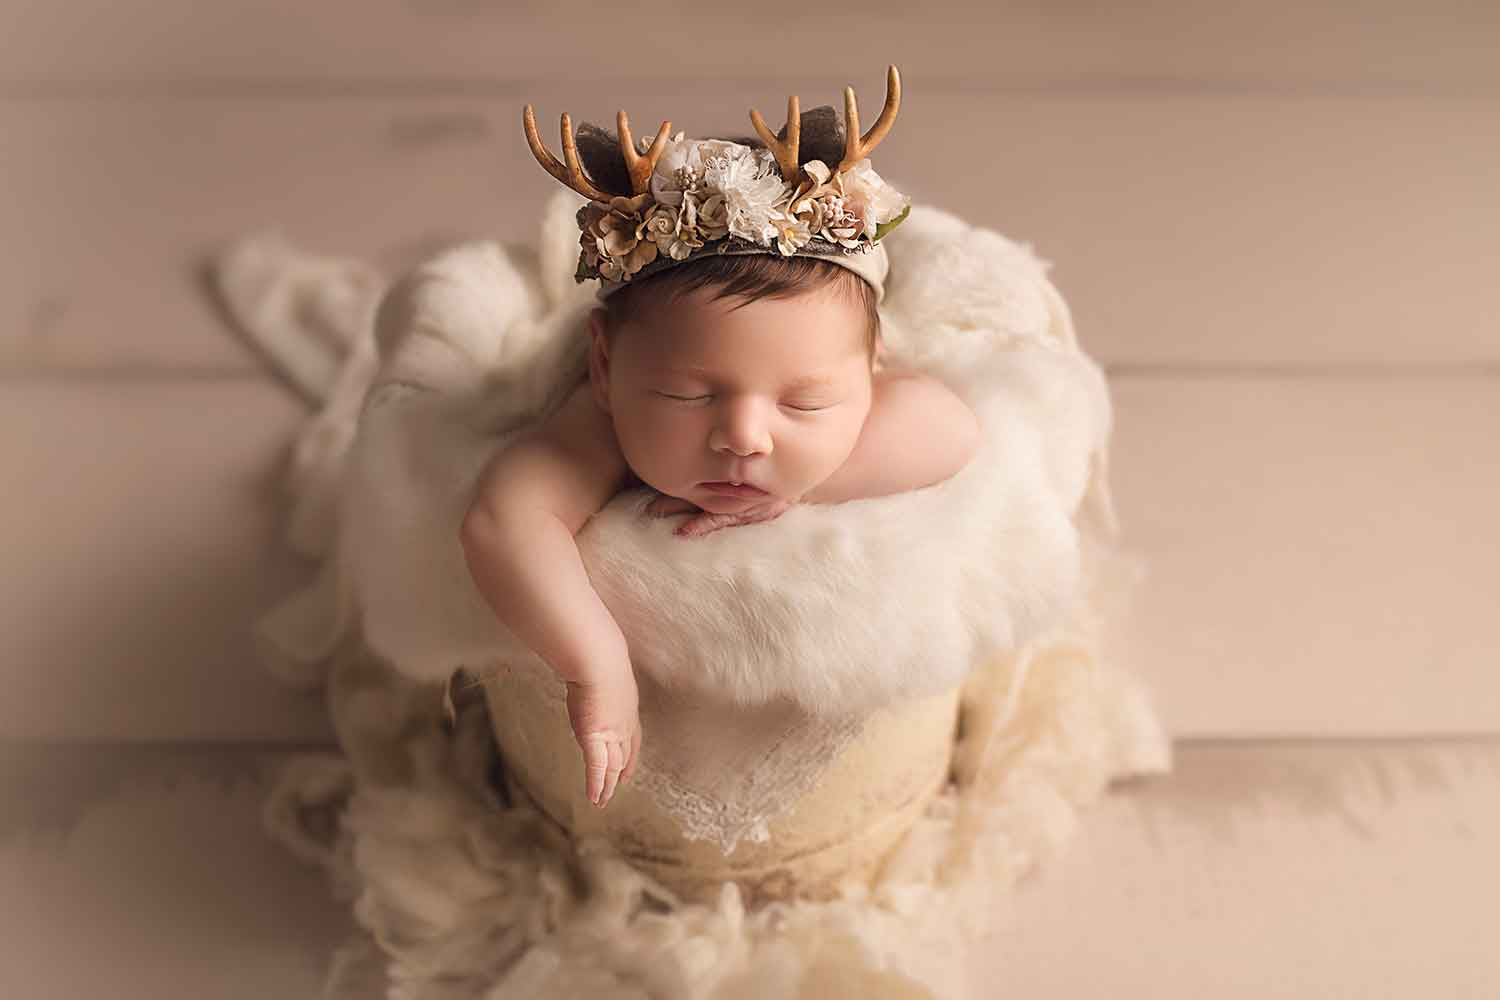 newborn baby with deer antlers